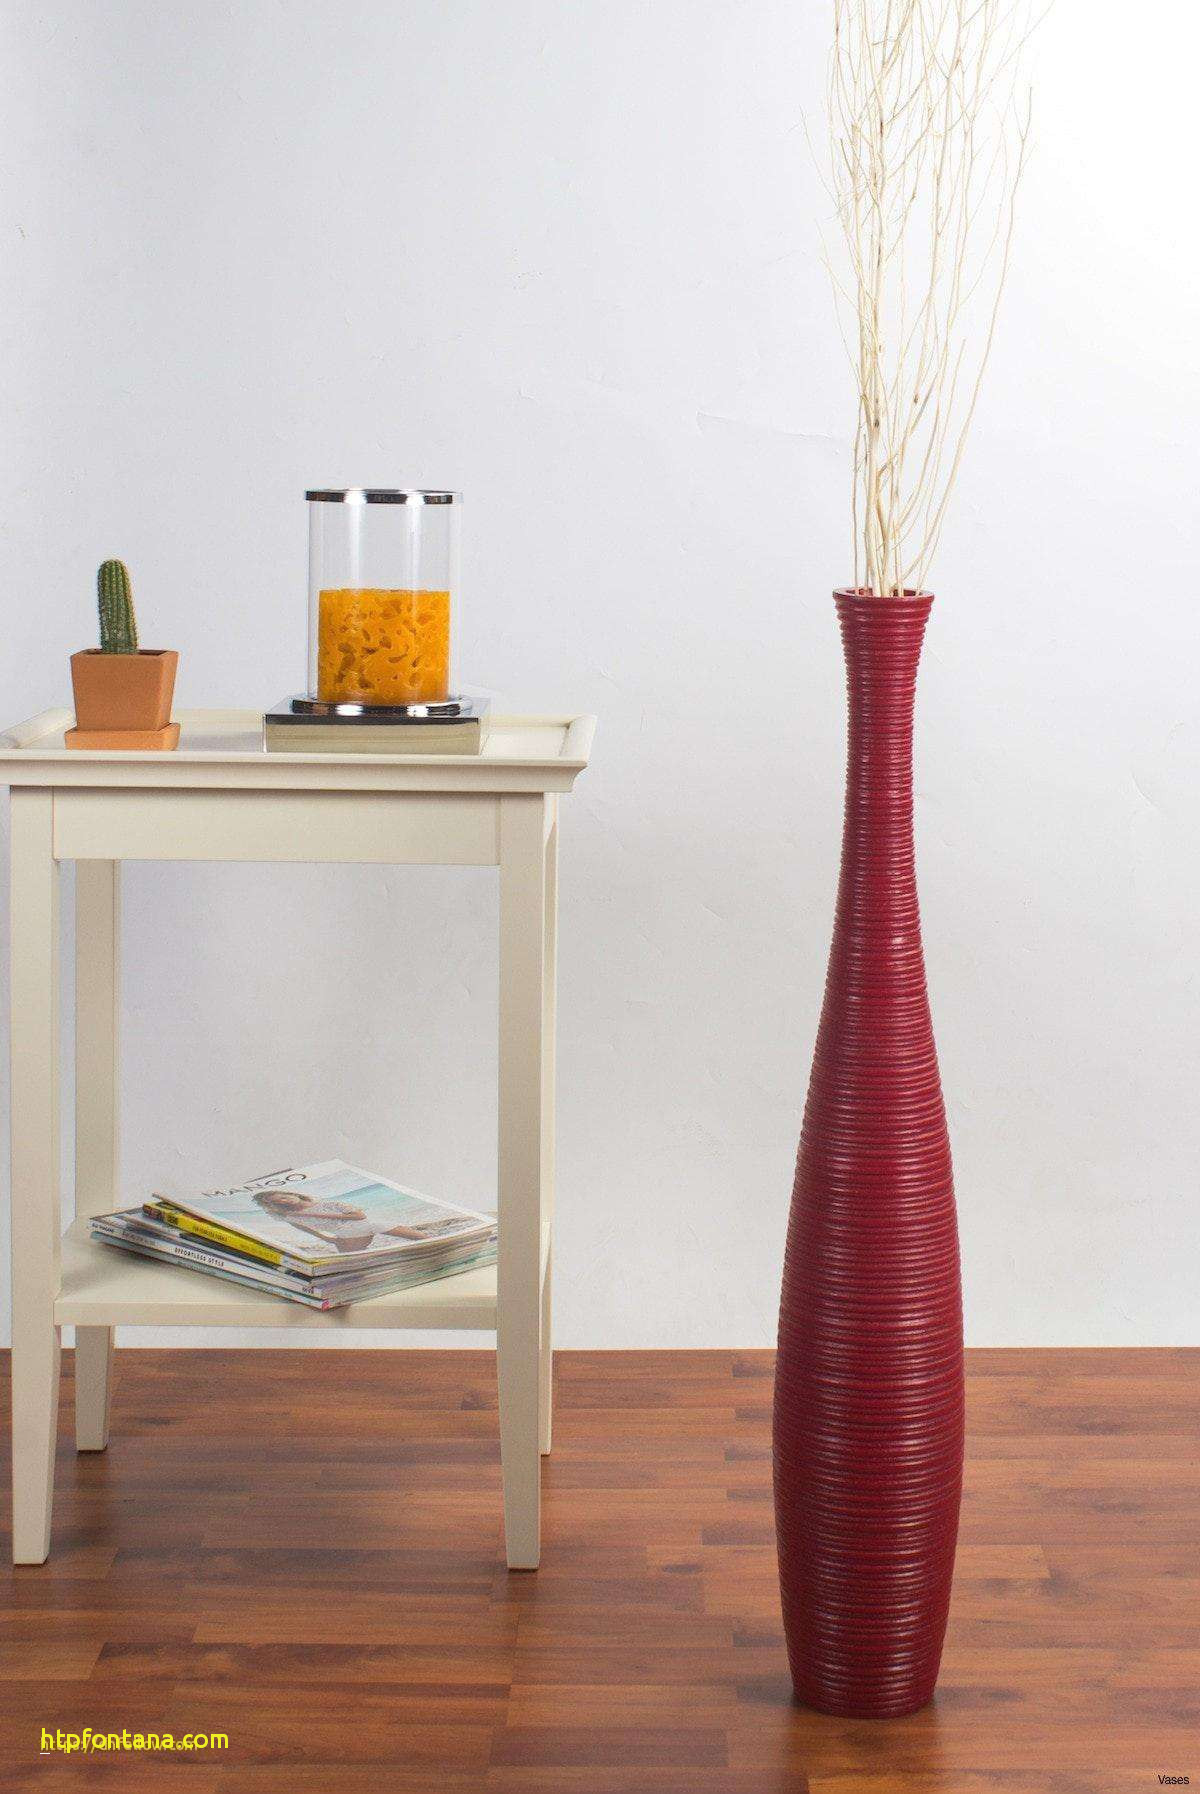 sand art vase of photograph of modern red vase vases artificial plants collection intended for modern red vase image beautiful yellow living room mucsat of photograph of modern red vase